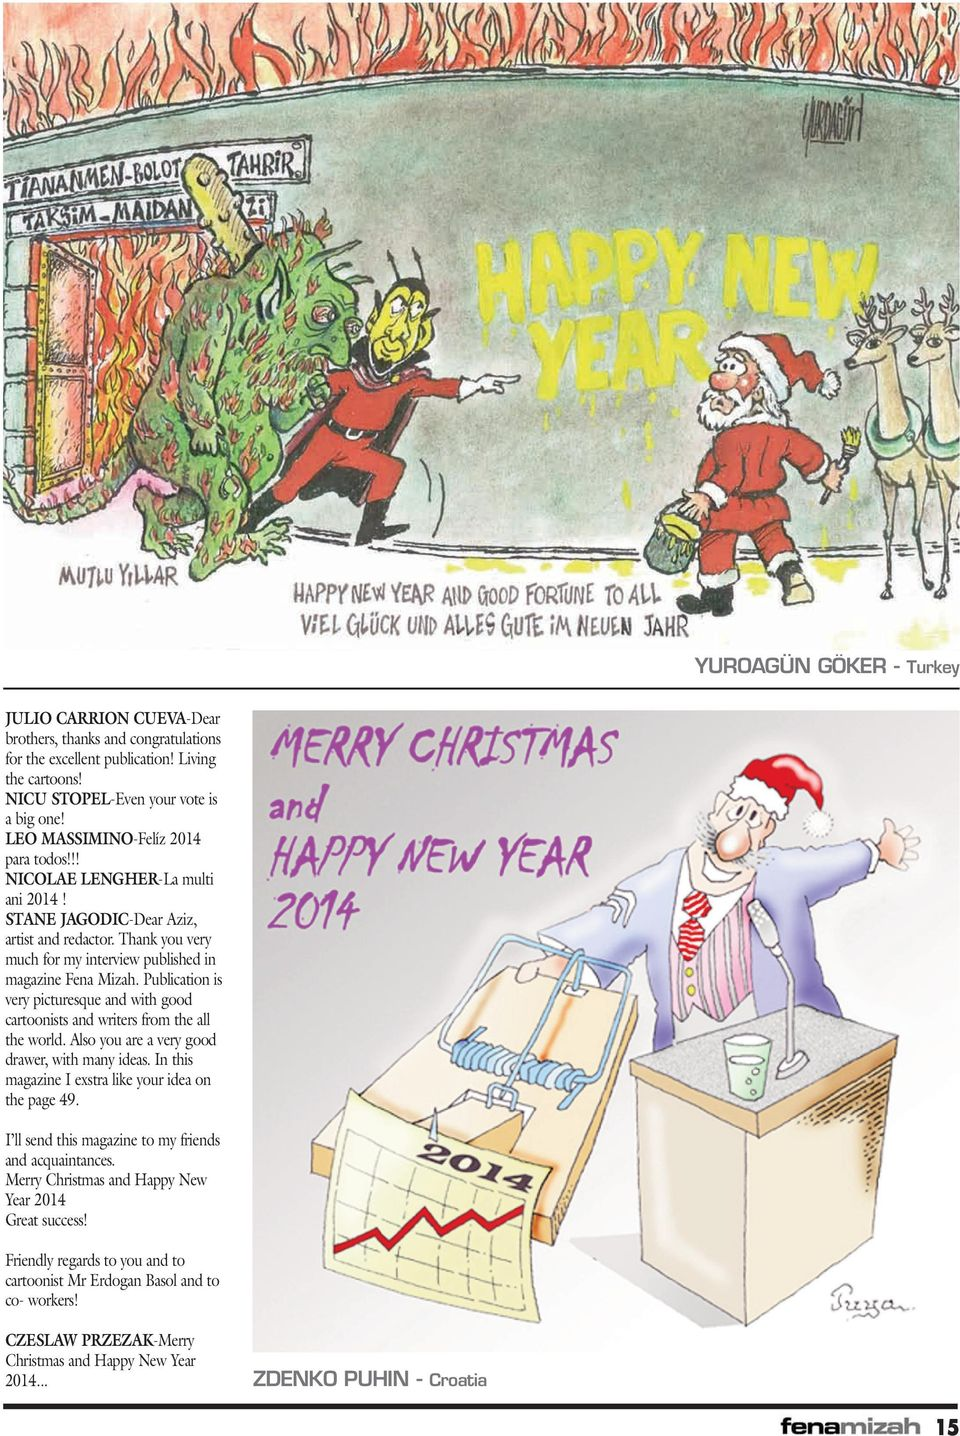 Publication is very picturesque and with good cartoonists and writers from the all the world. Also you are a very good drawer, with many ideas. In this magazine I exstra like your idea on the page 49.